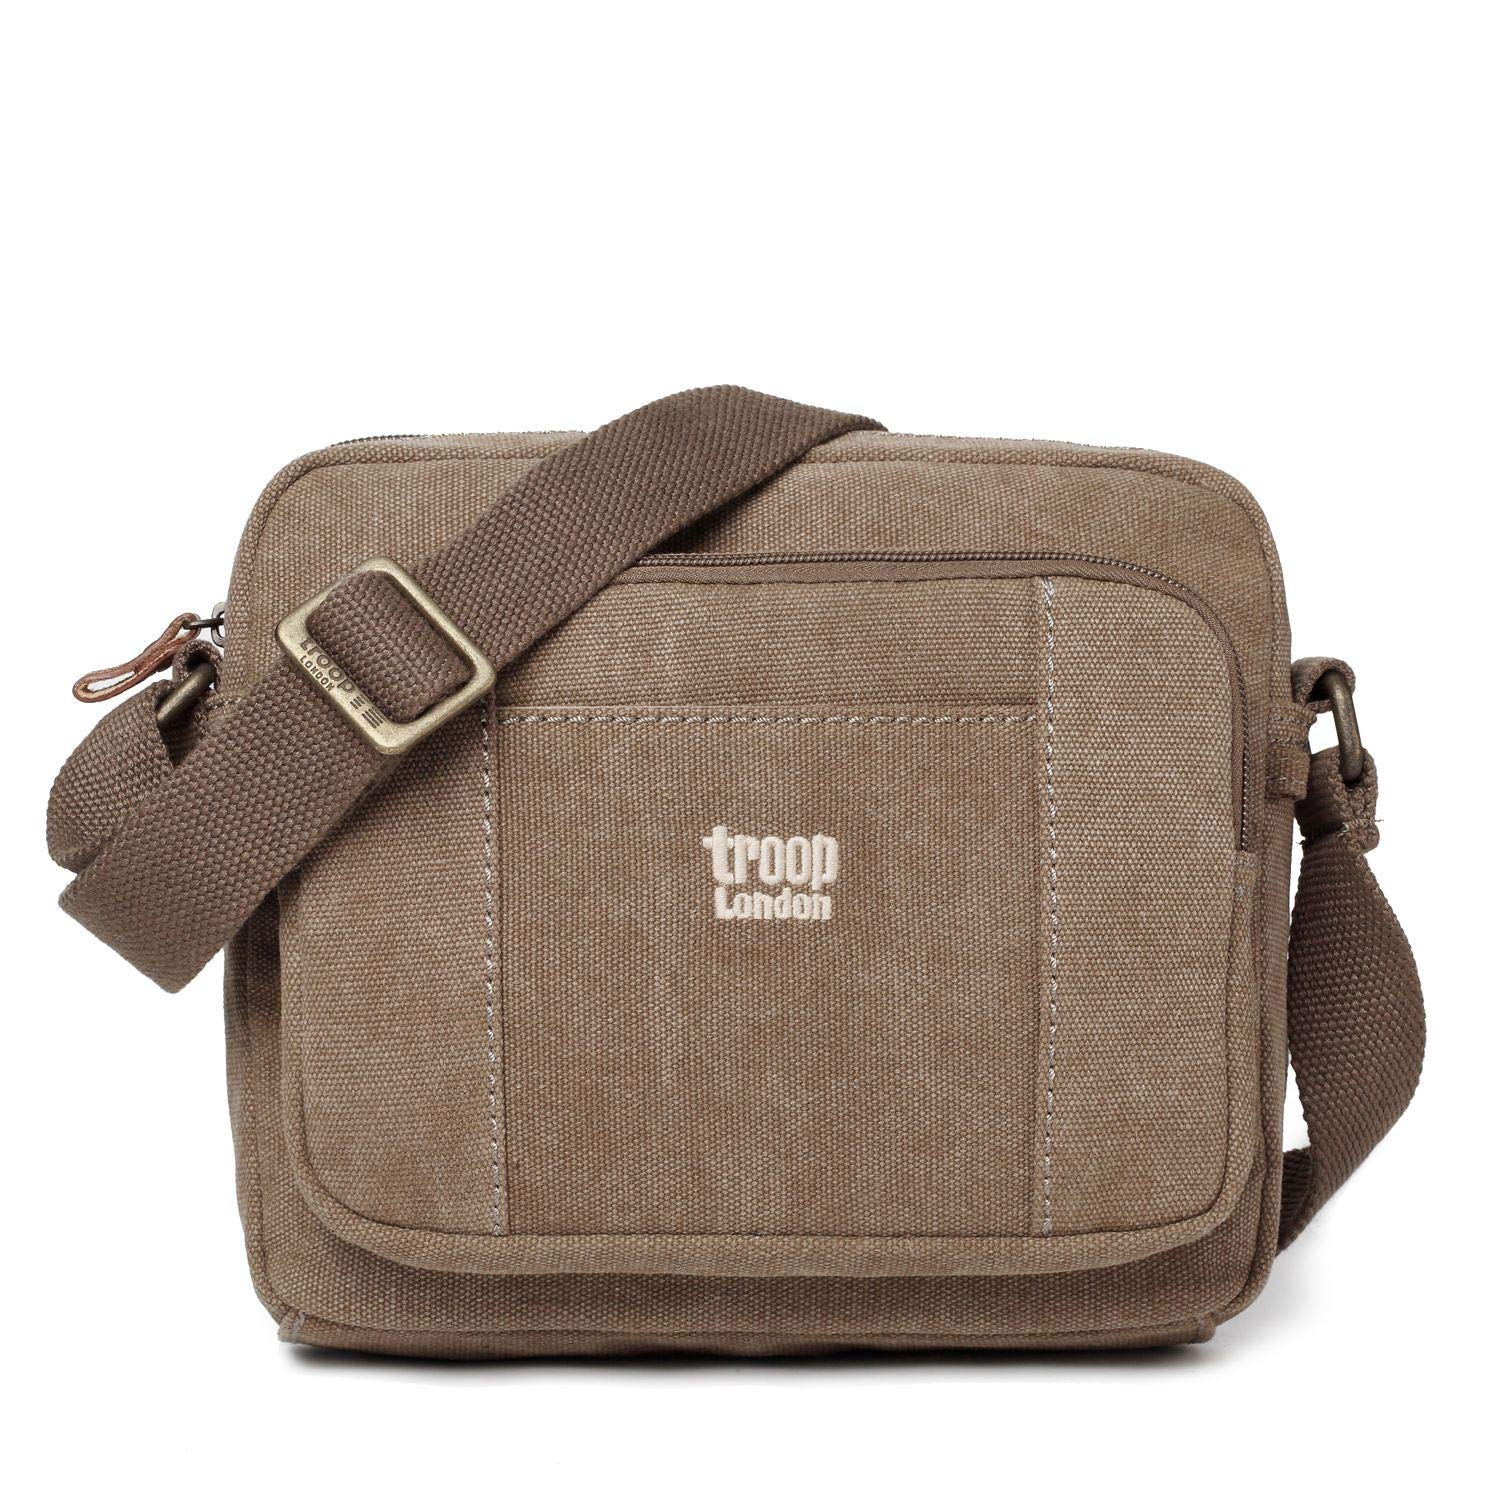 Troop London Buddy Sac /à bandouli/ère Gris anthracite, Noir